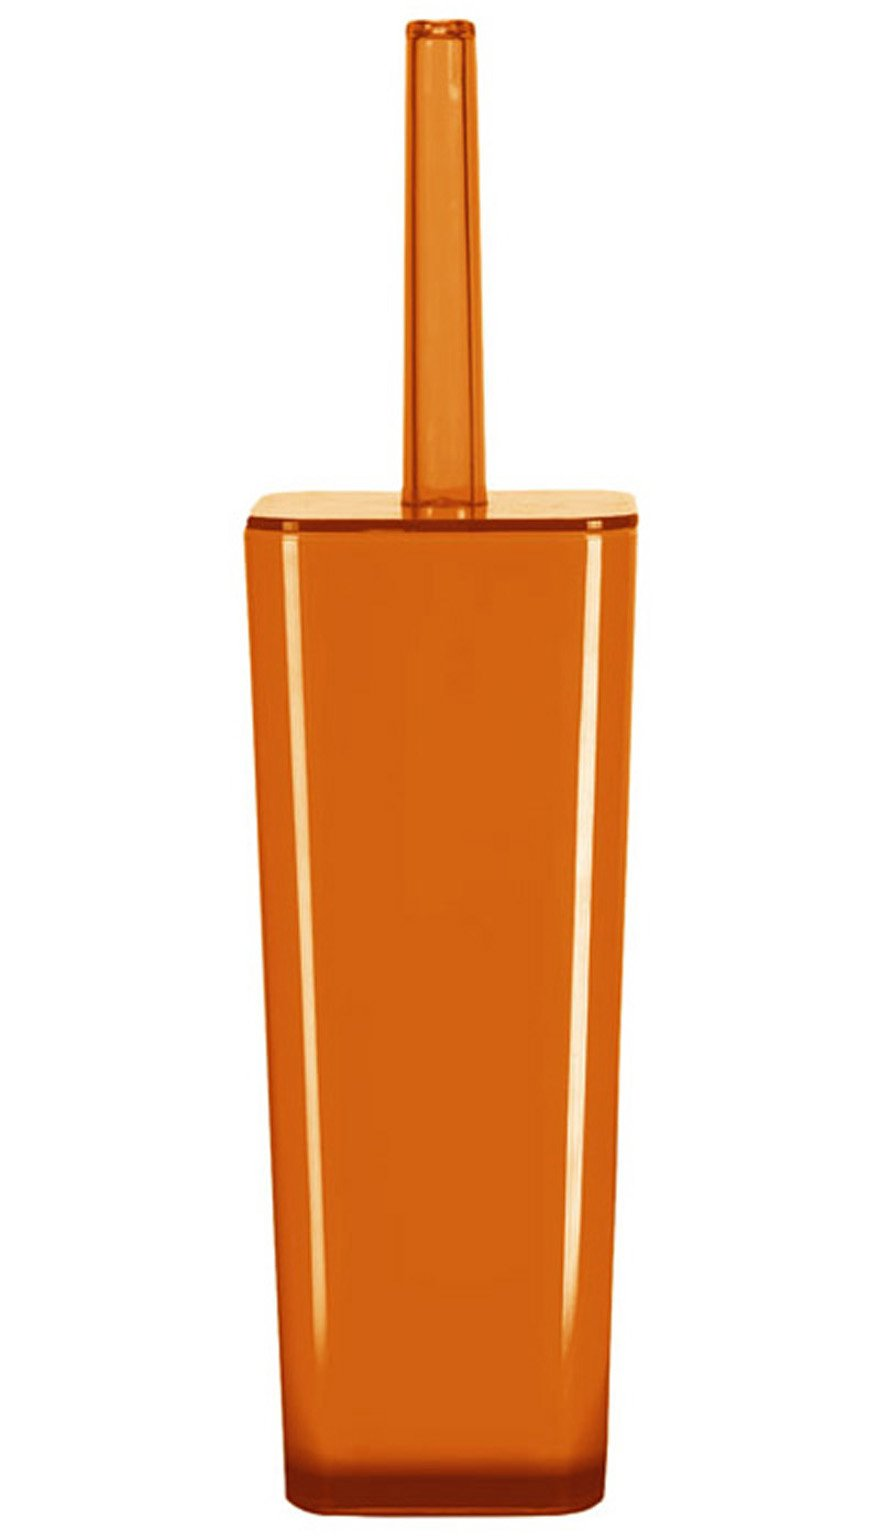 WC-Bürstenhalter Easy Orange B:10cm